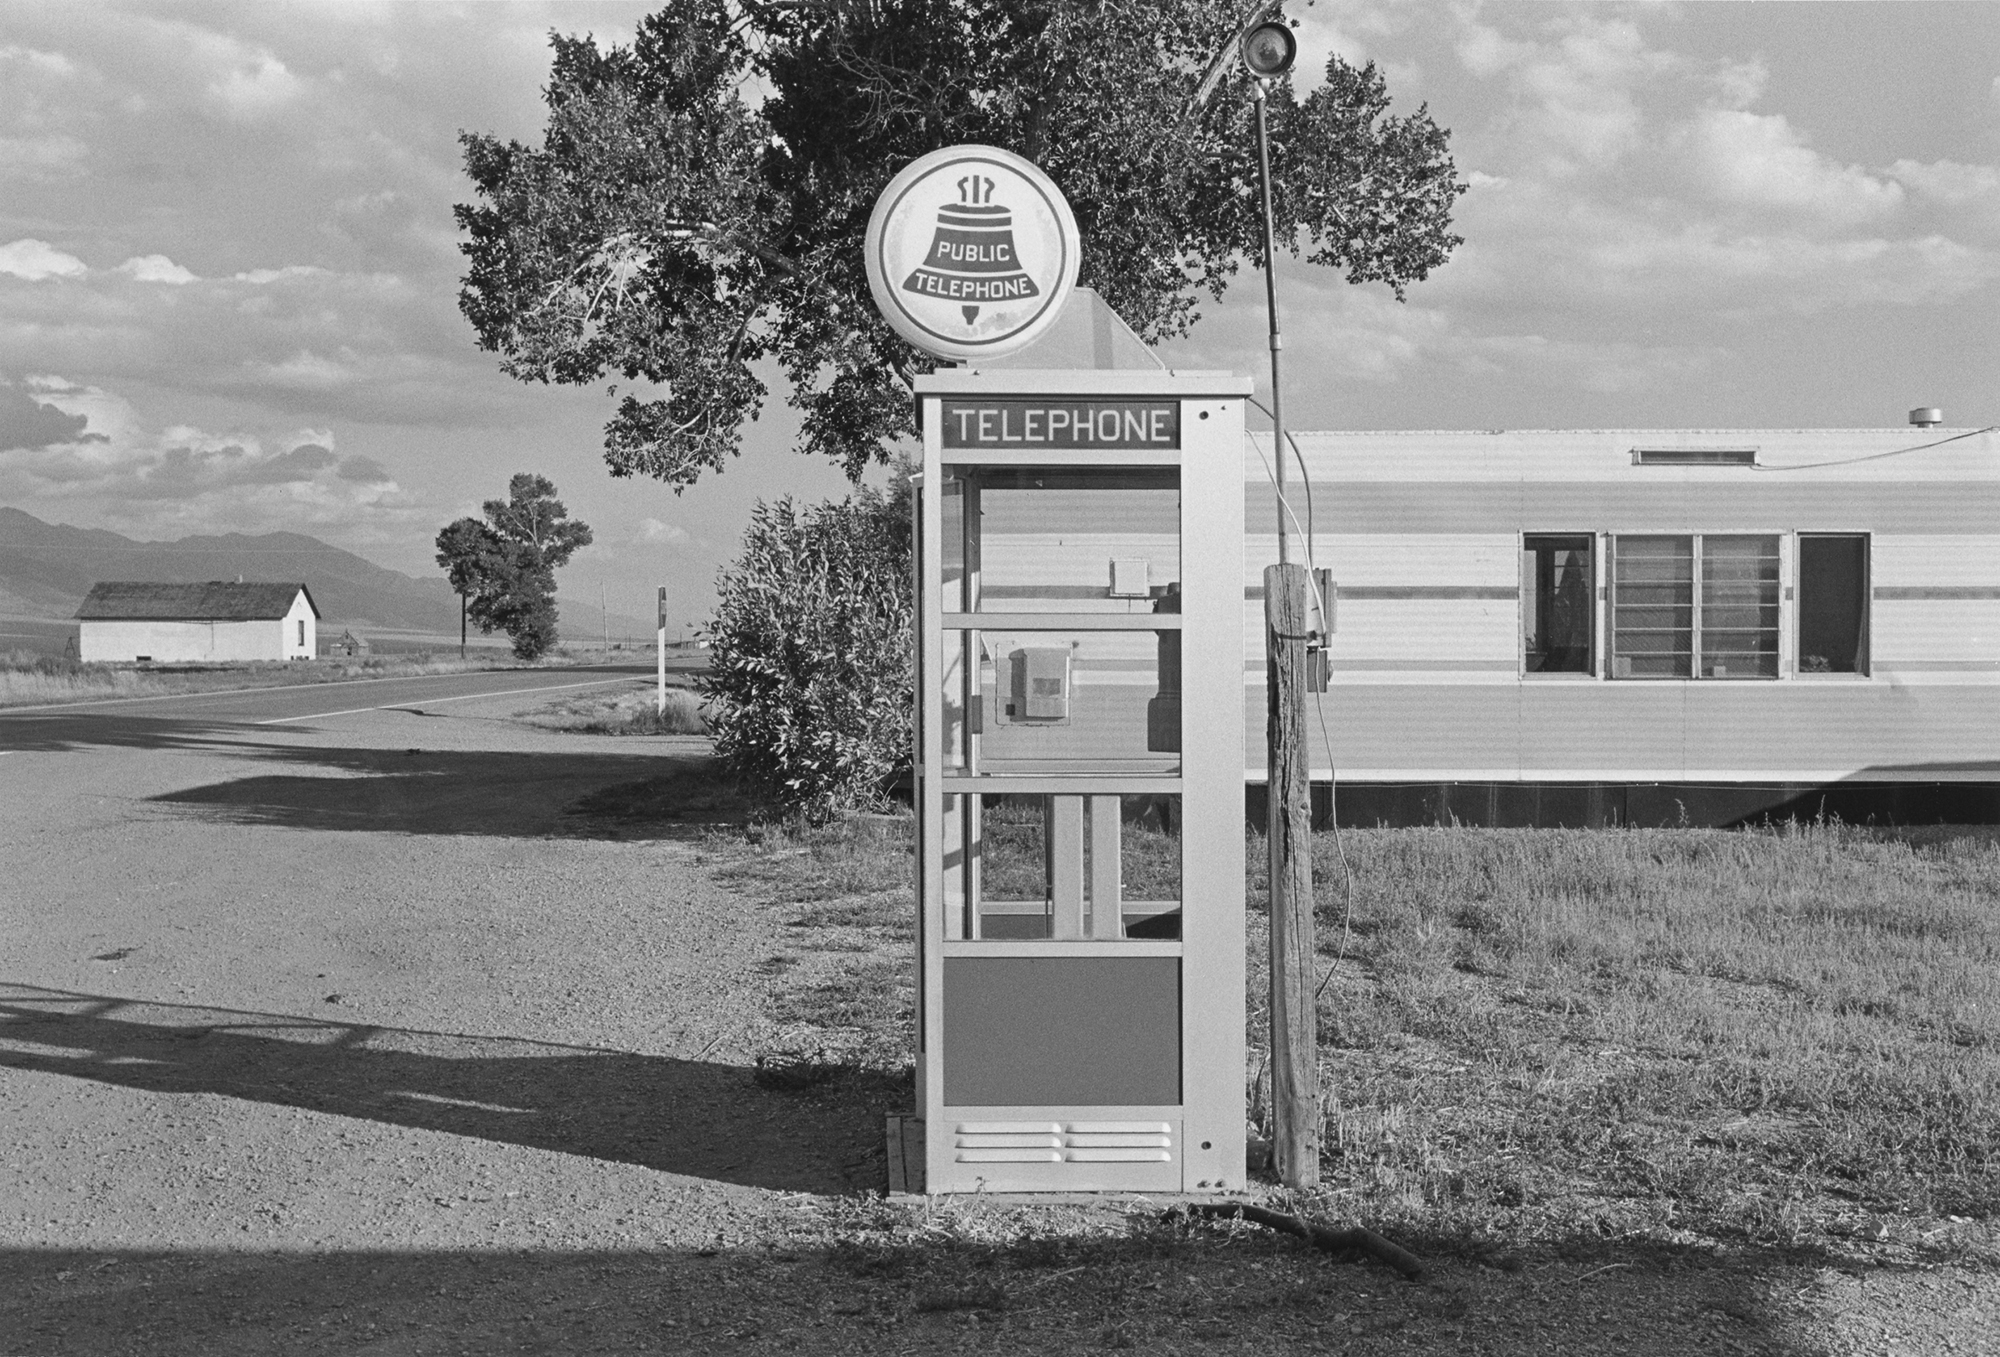 Henry Wessel photograph of pay phone in rural area